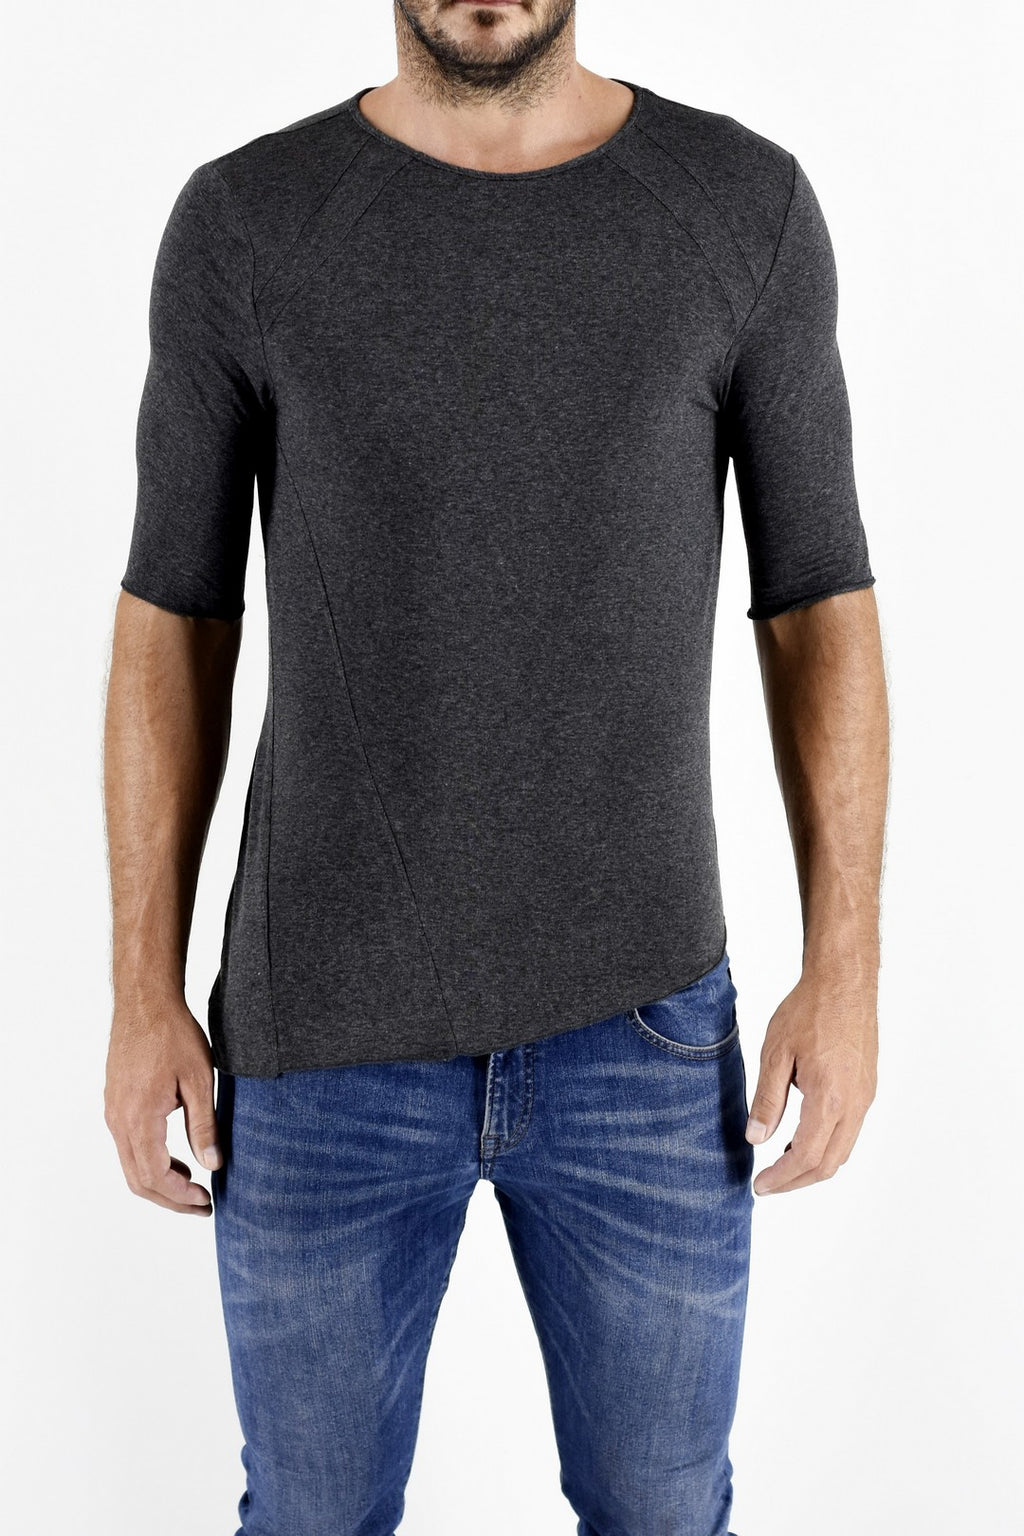 ZG5173 Charcoal Marl 3/4 Sleeve T Shirt